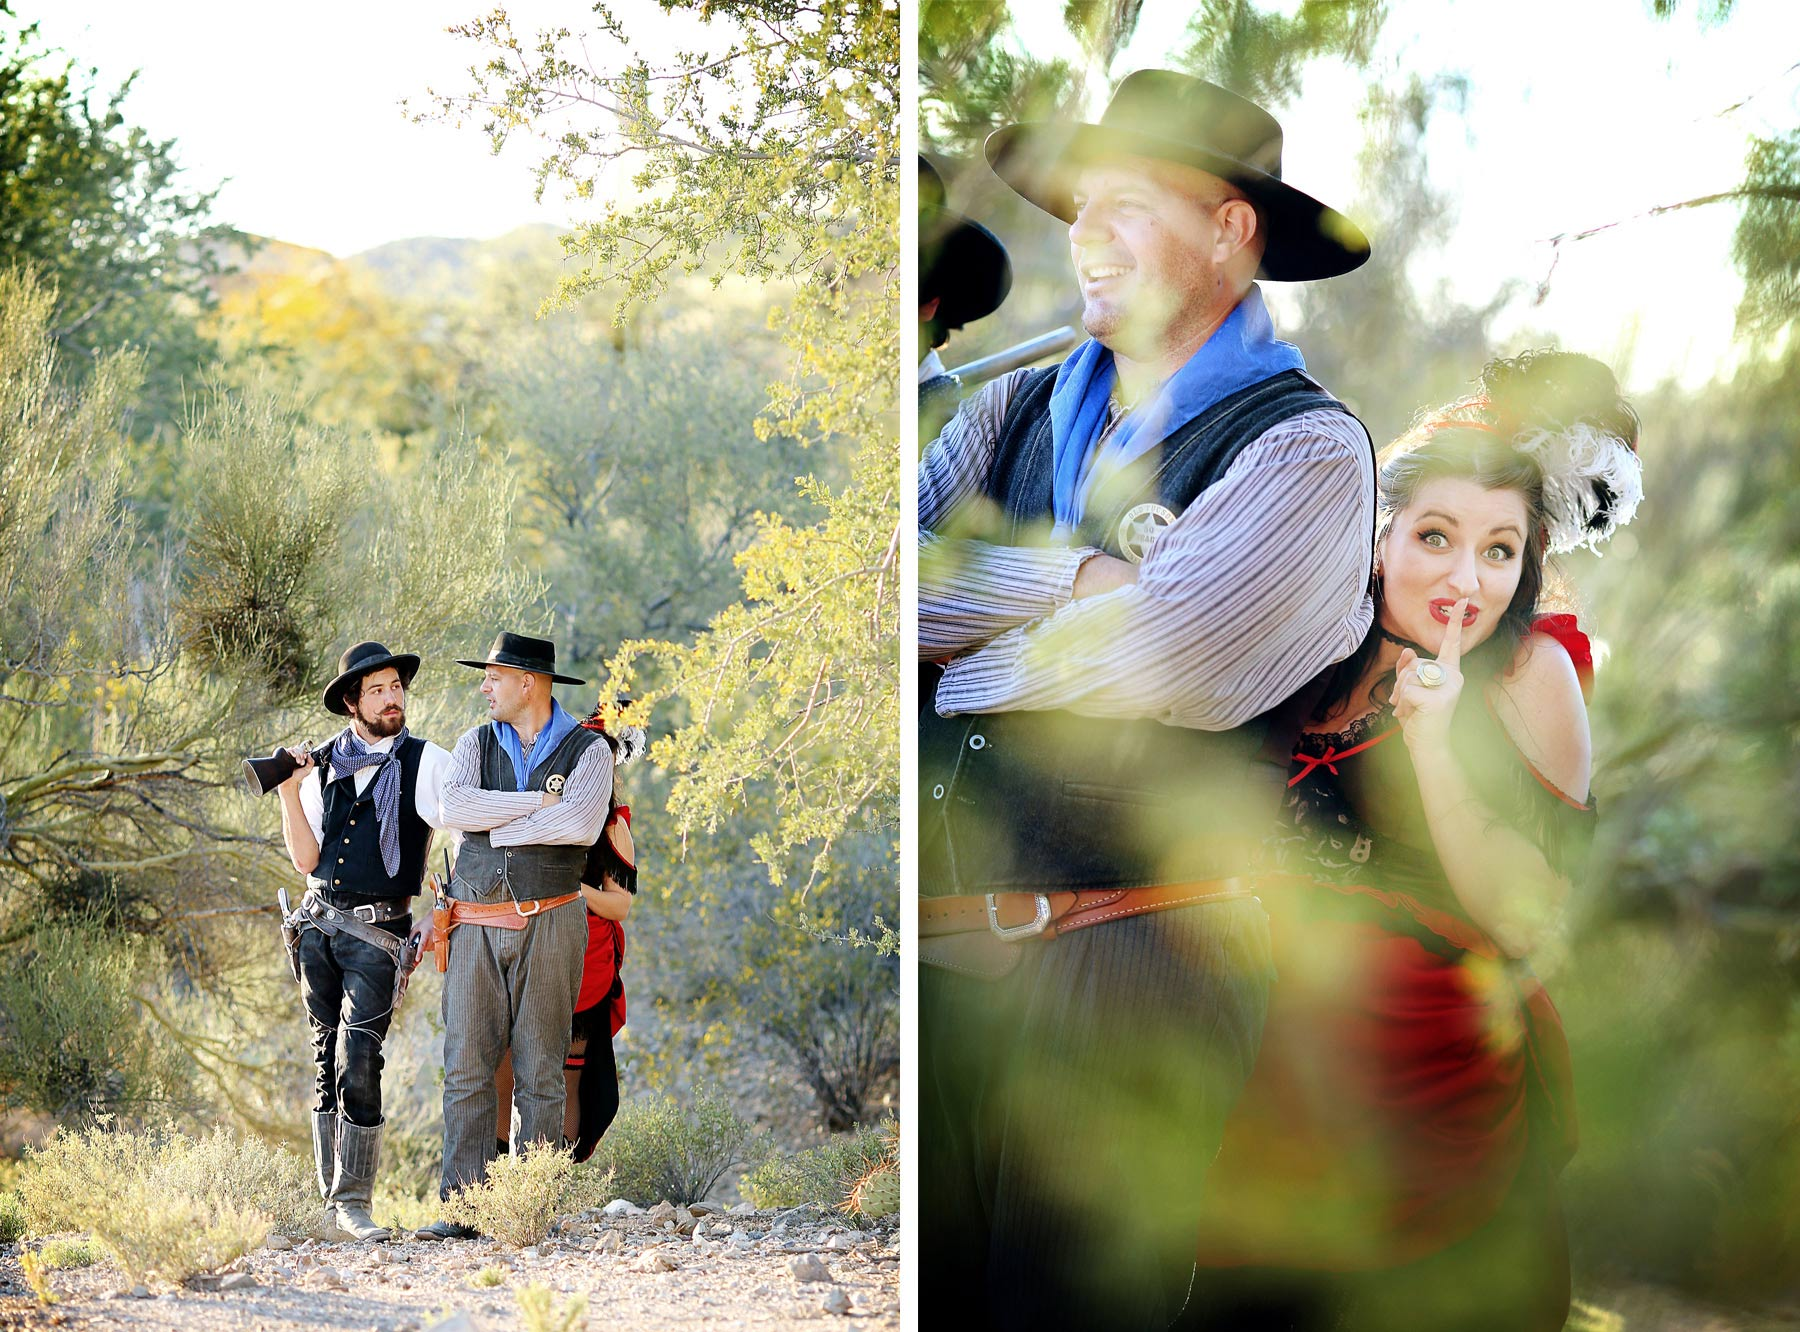 09-Tuscan-Arizona-Wedding-Photography-by-Vick-Photography-Destination-Wedding-Desert-Old-Tucson-Studios-Outdoor-Ceremony-Cowboy-Hat-Elsa-and-Arthur.jpg